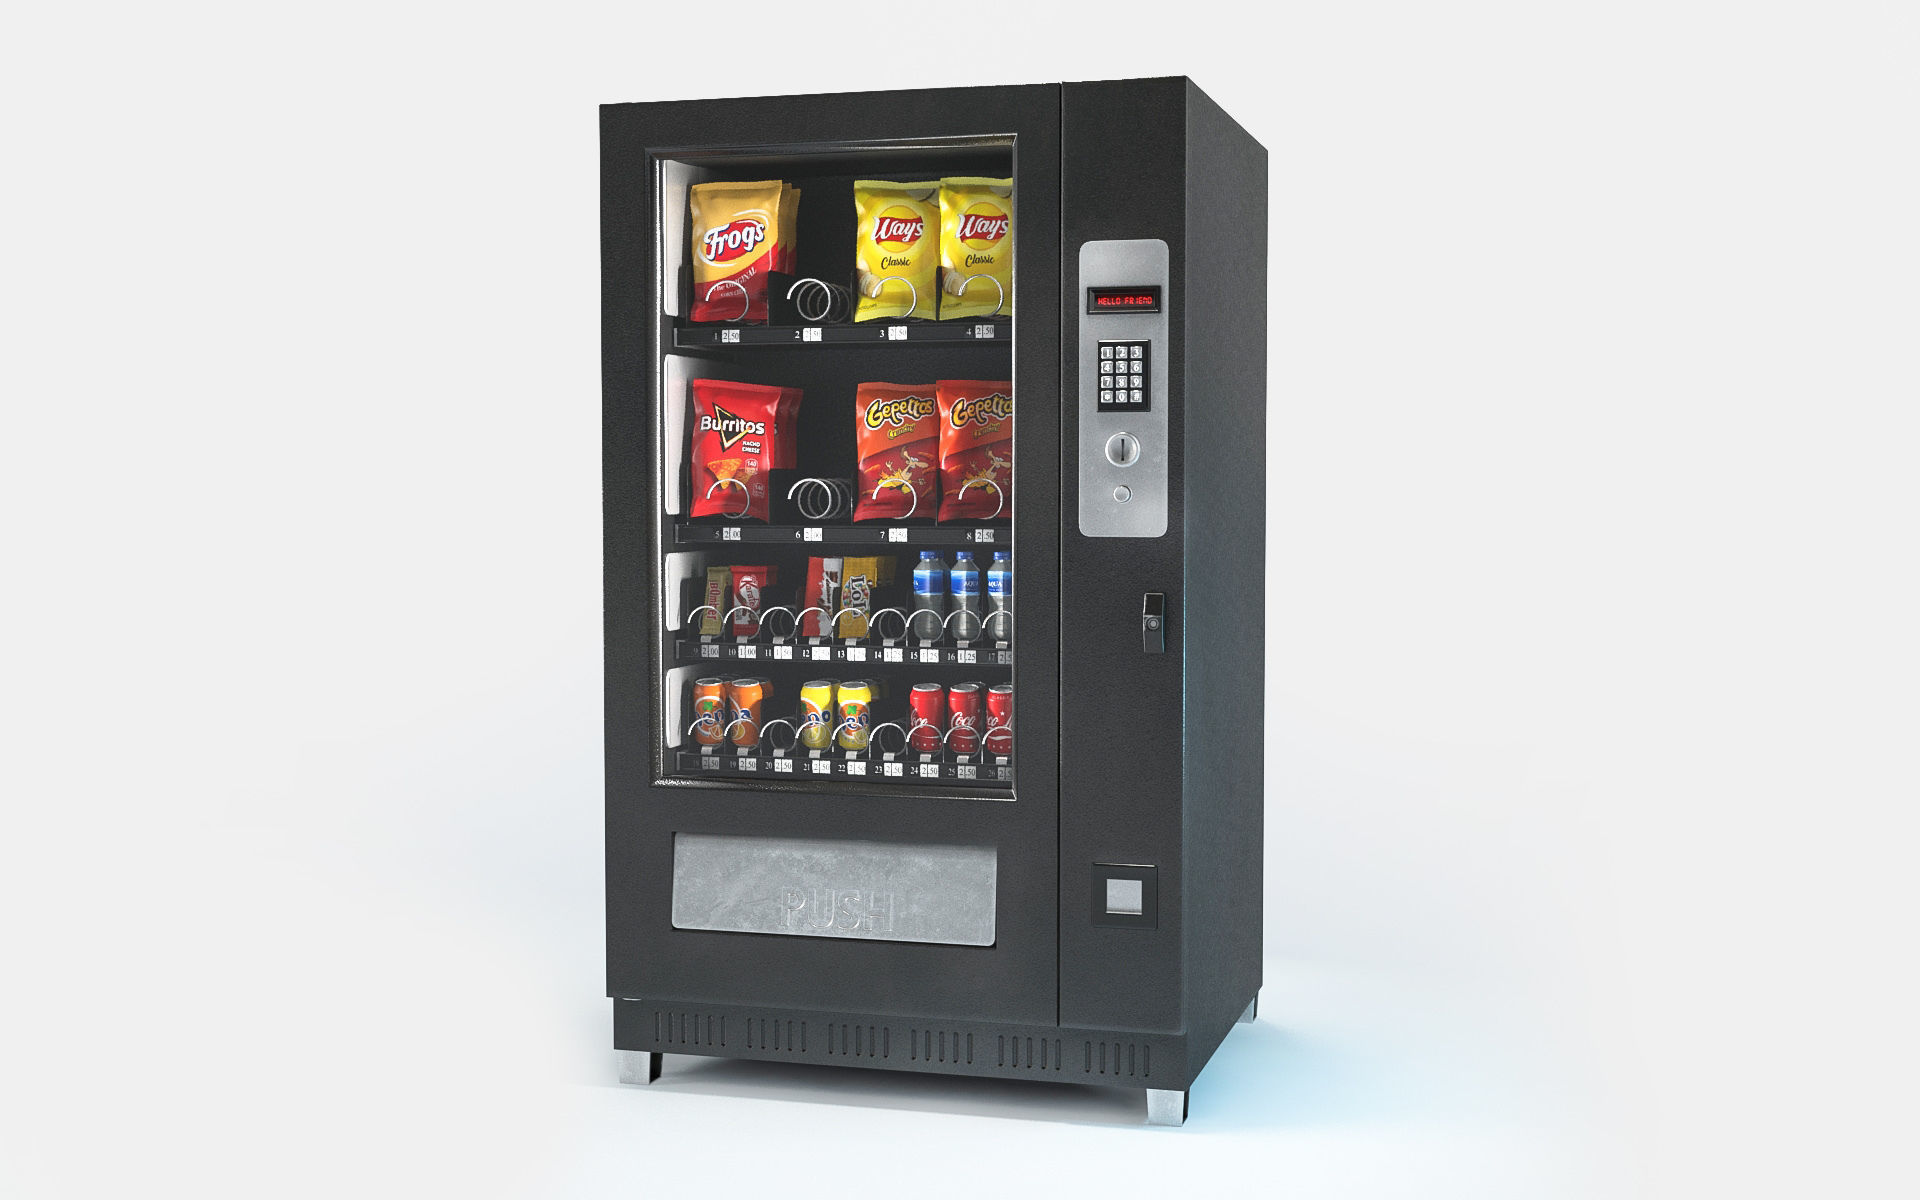 Vending machine Low-poly 3D model